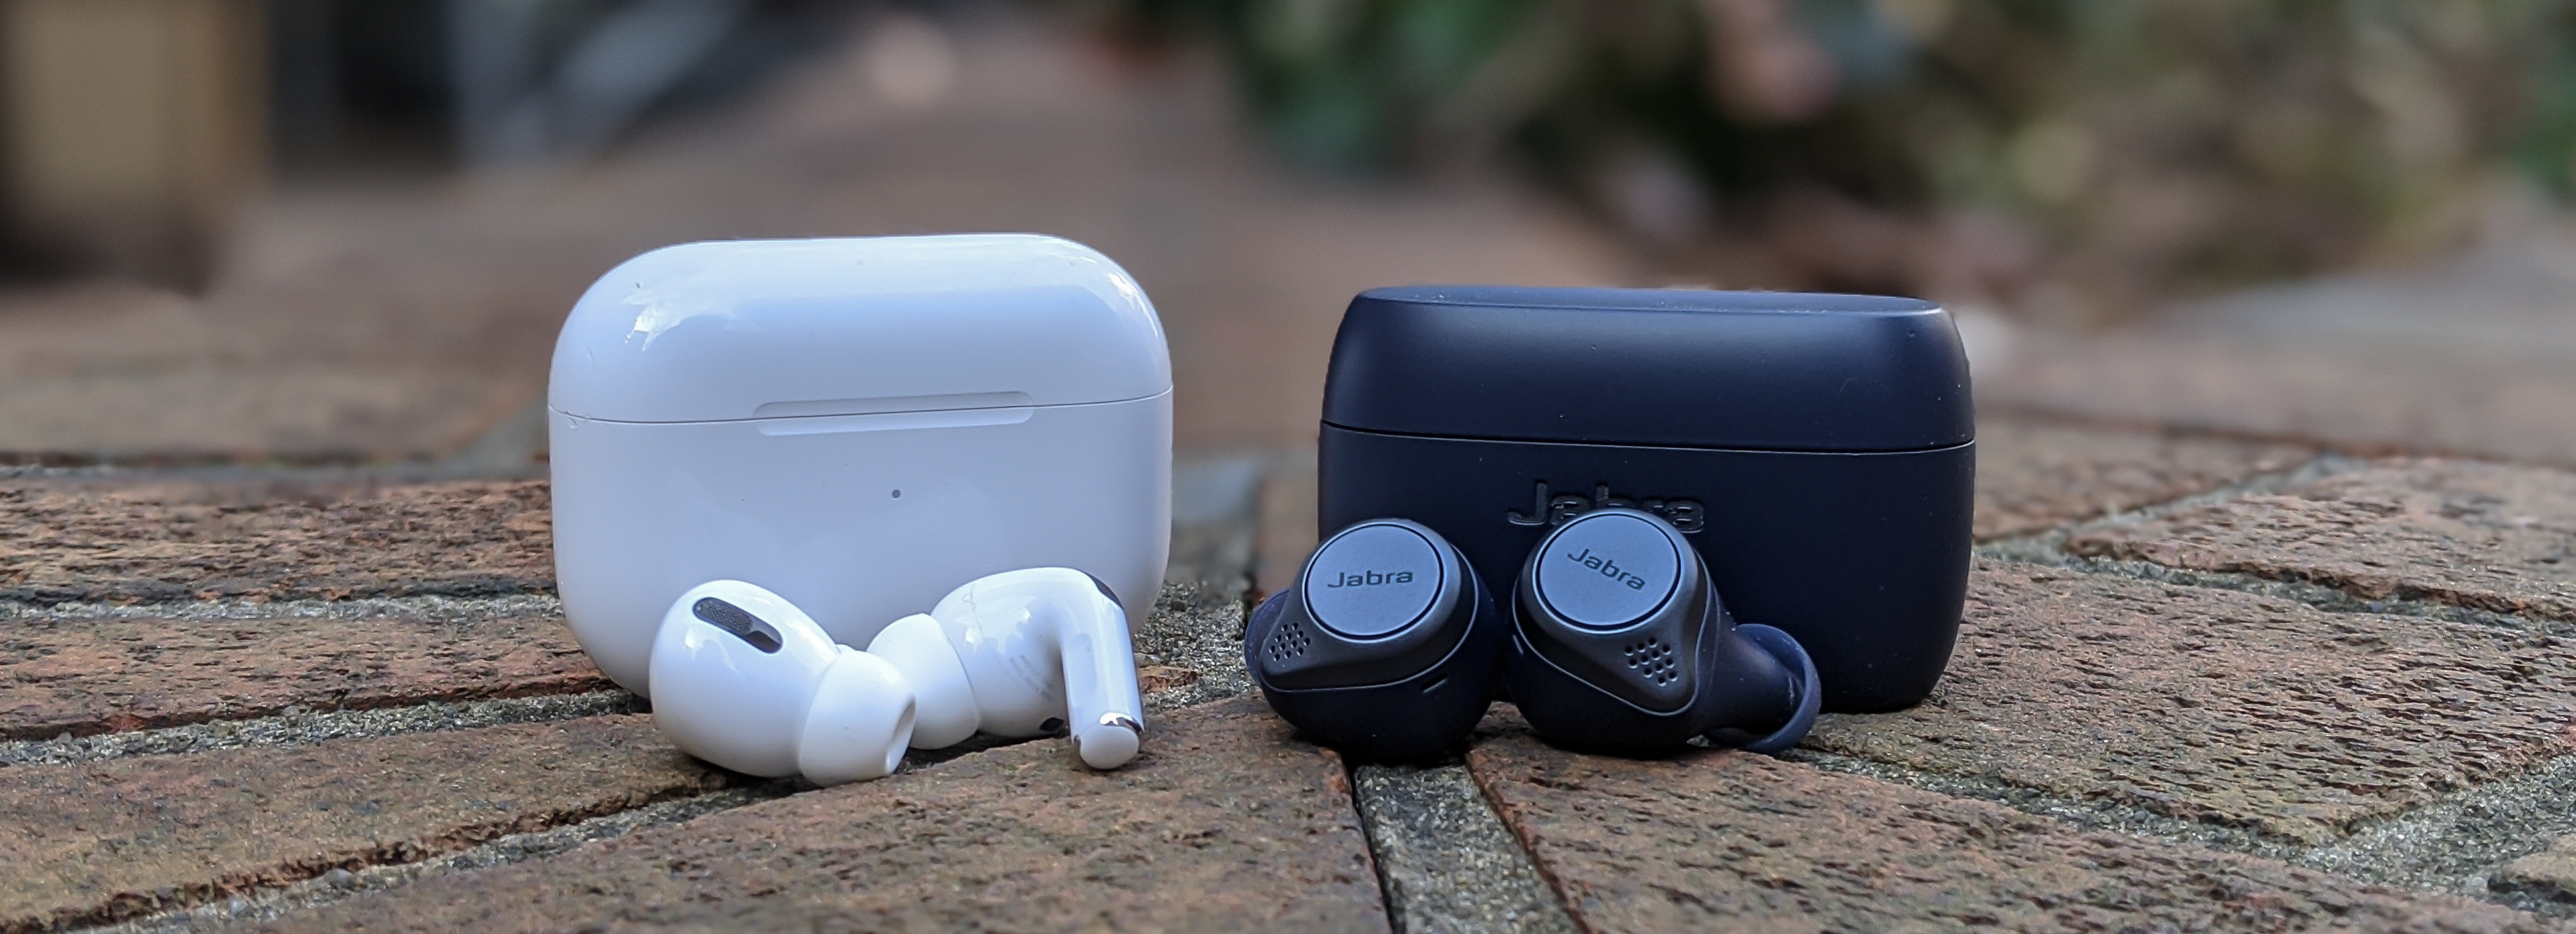 Airpods Pro Vs Jabra Elite Active 75t Which Wireless Earbuds Win Tom S Guide